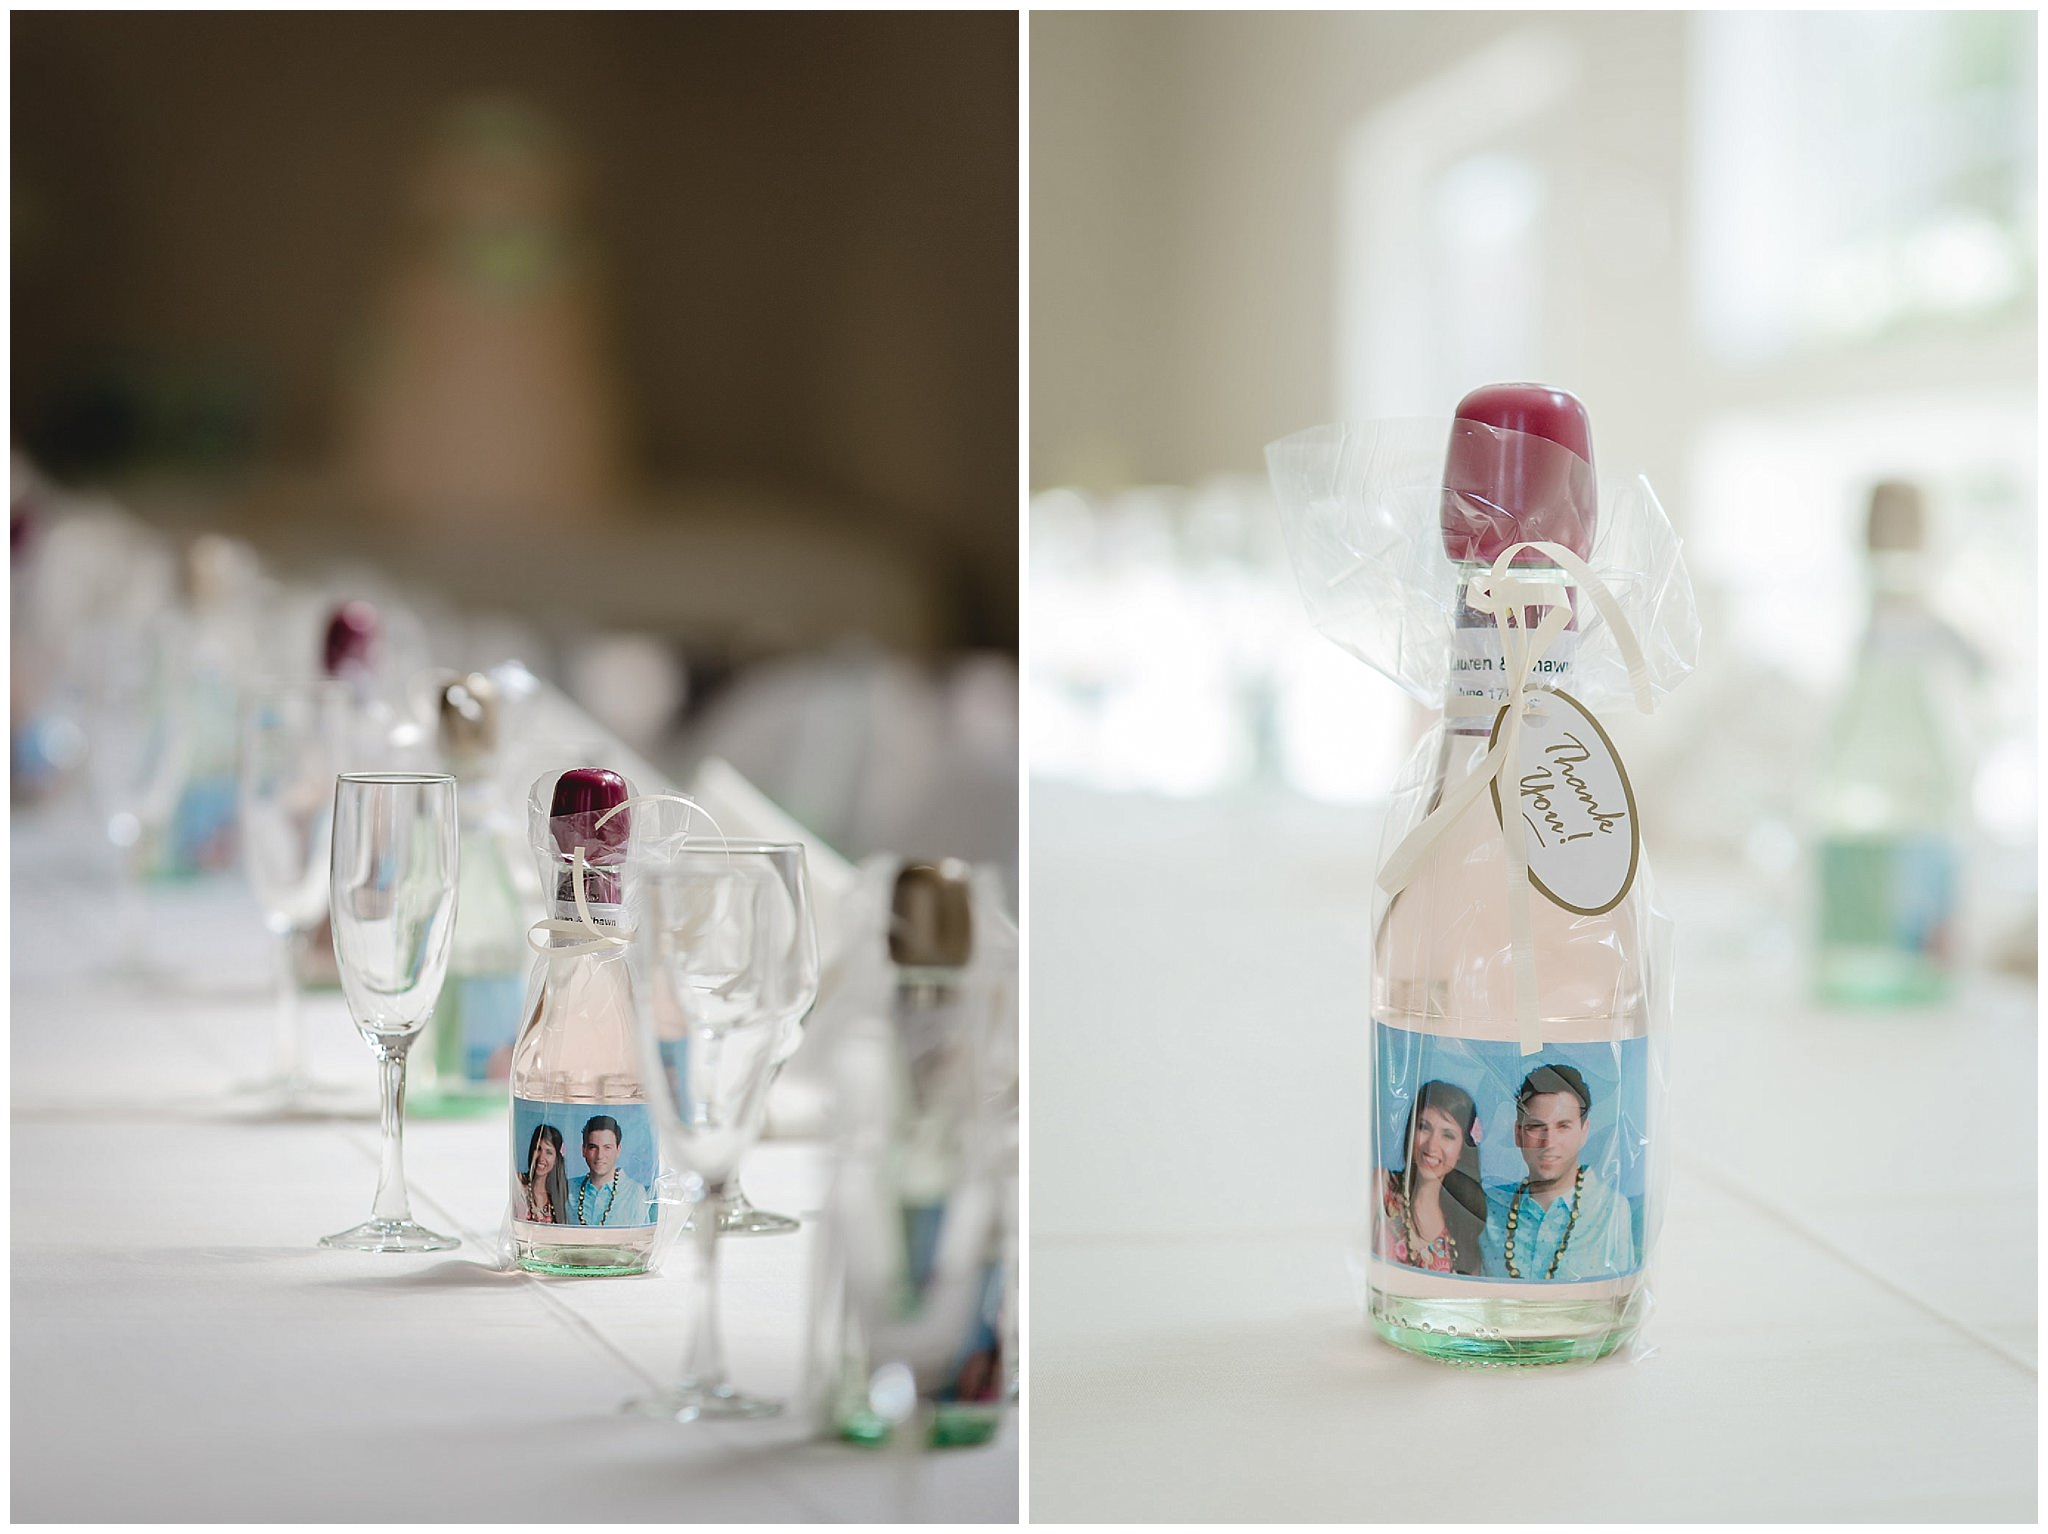 Wine bottle favors at a reception at Greystone Fields